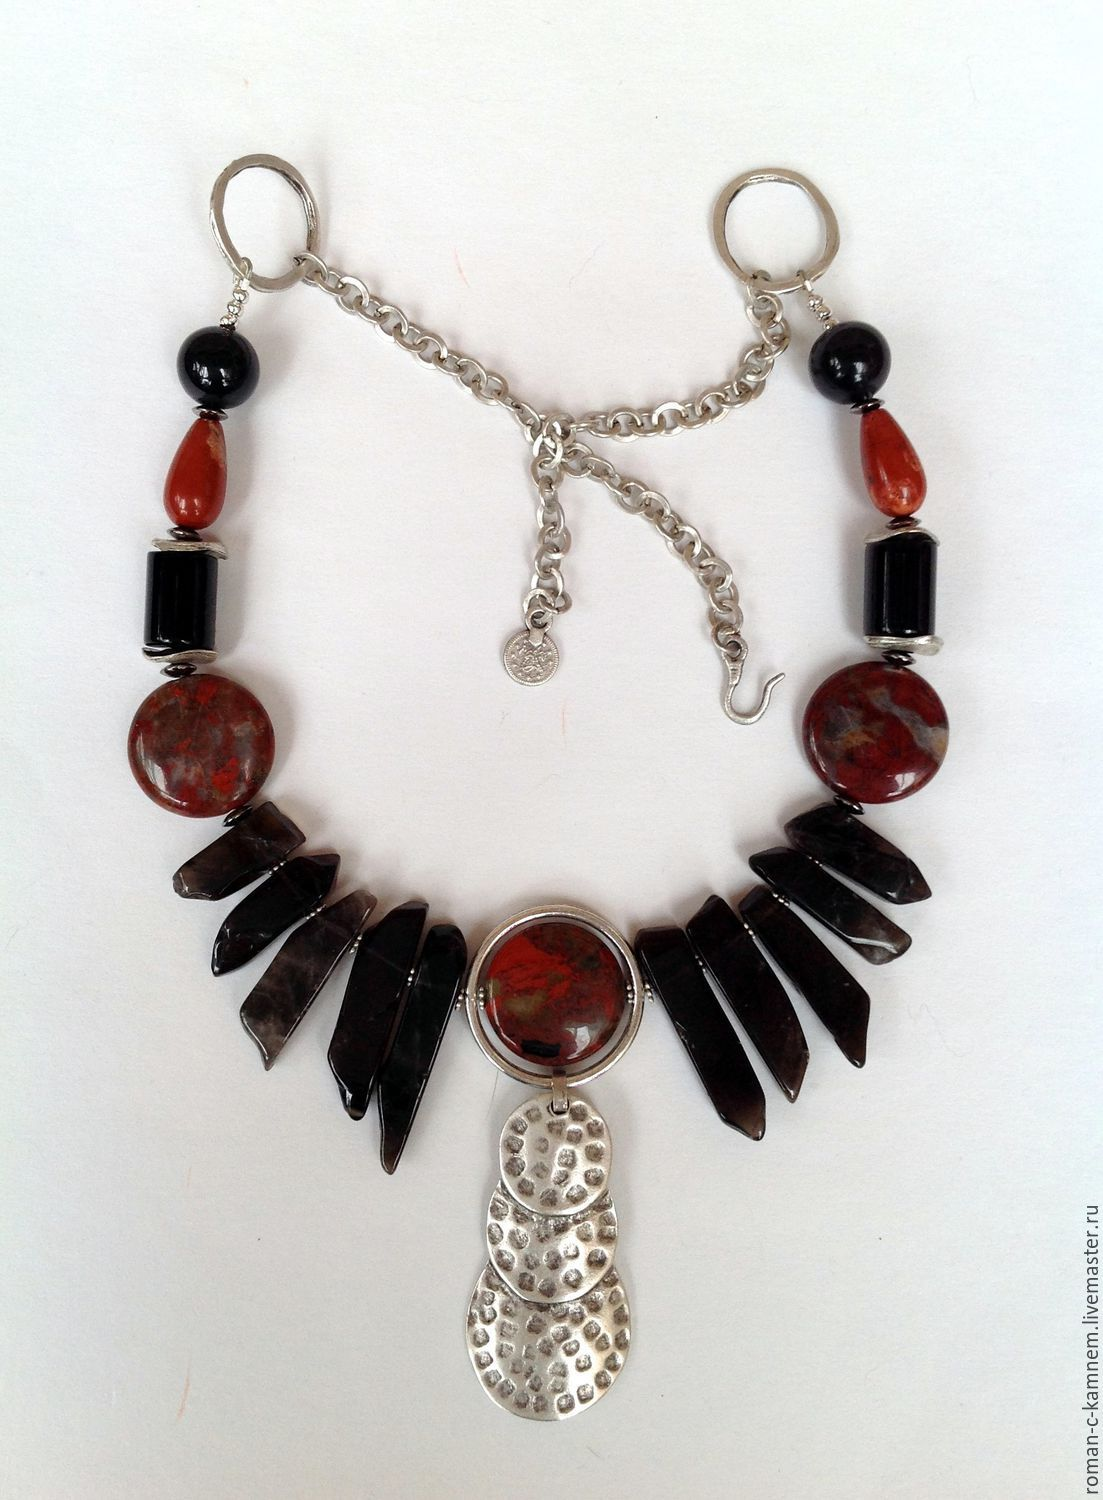 Necklaces, ethnic beads made from natural stones in African style the Black continent. Original gift for the stylish, bold and independent women and girls.